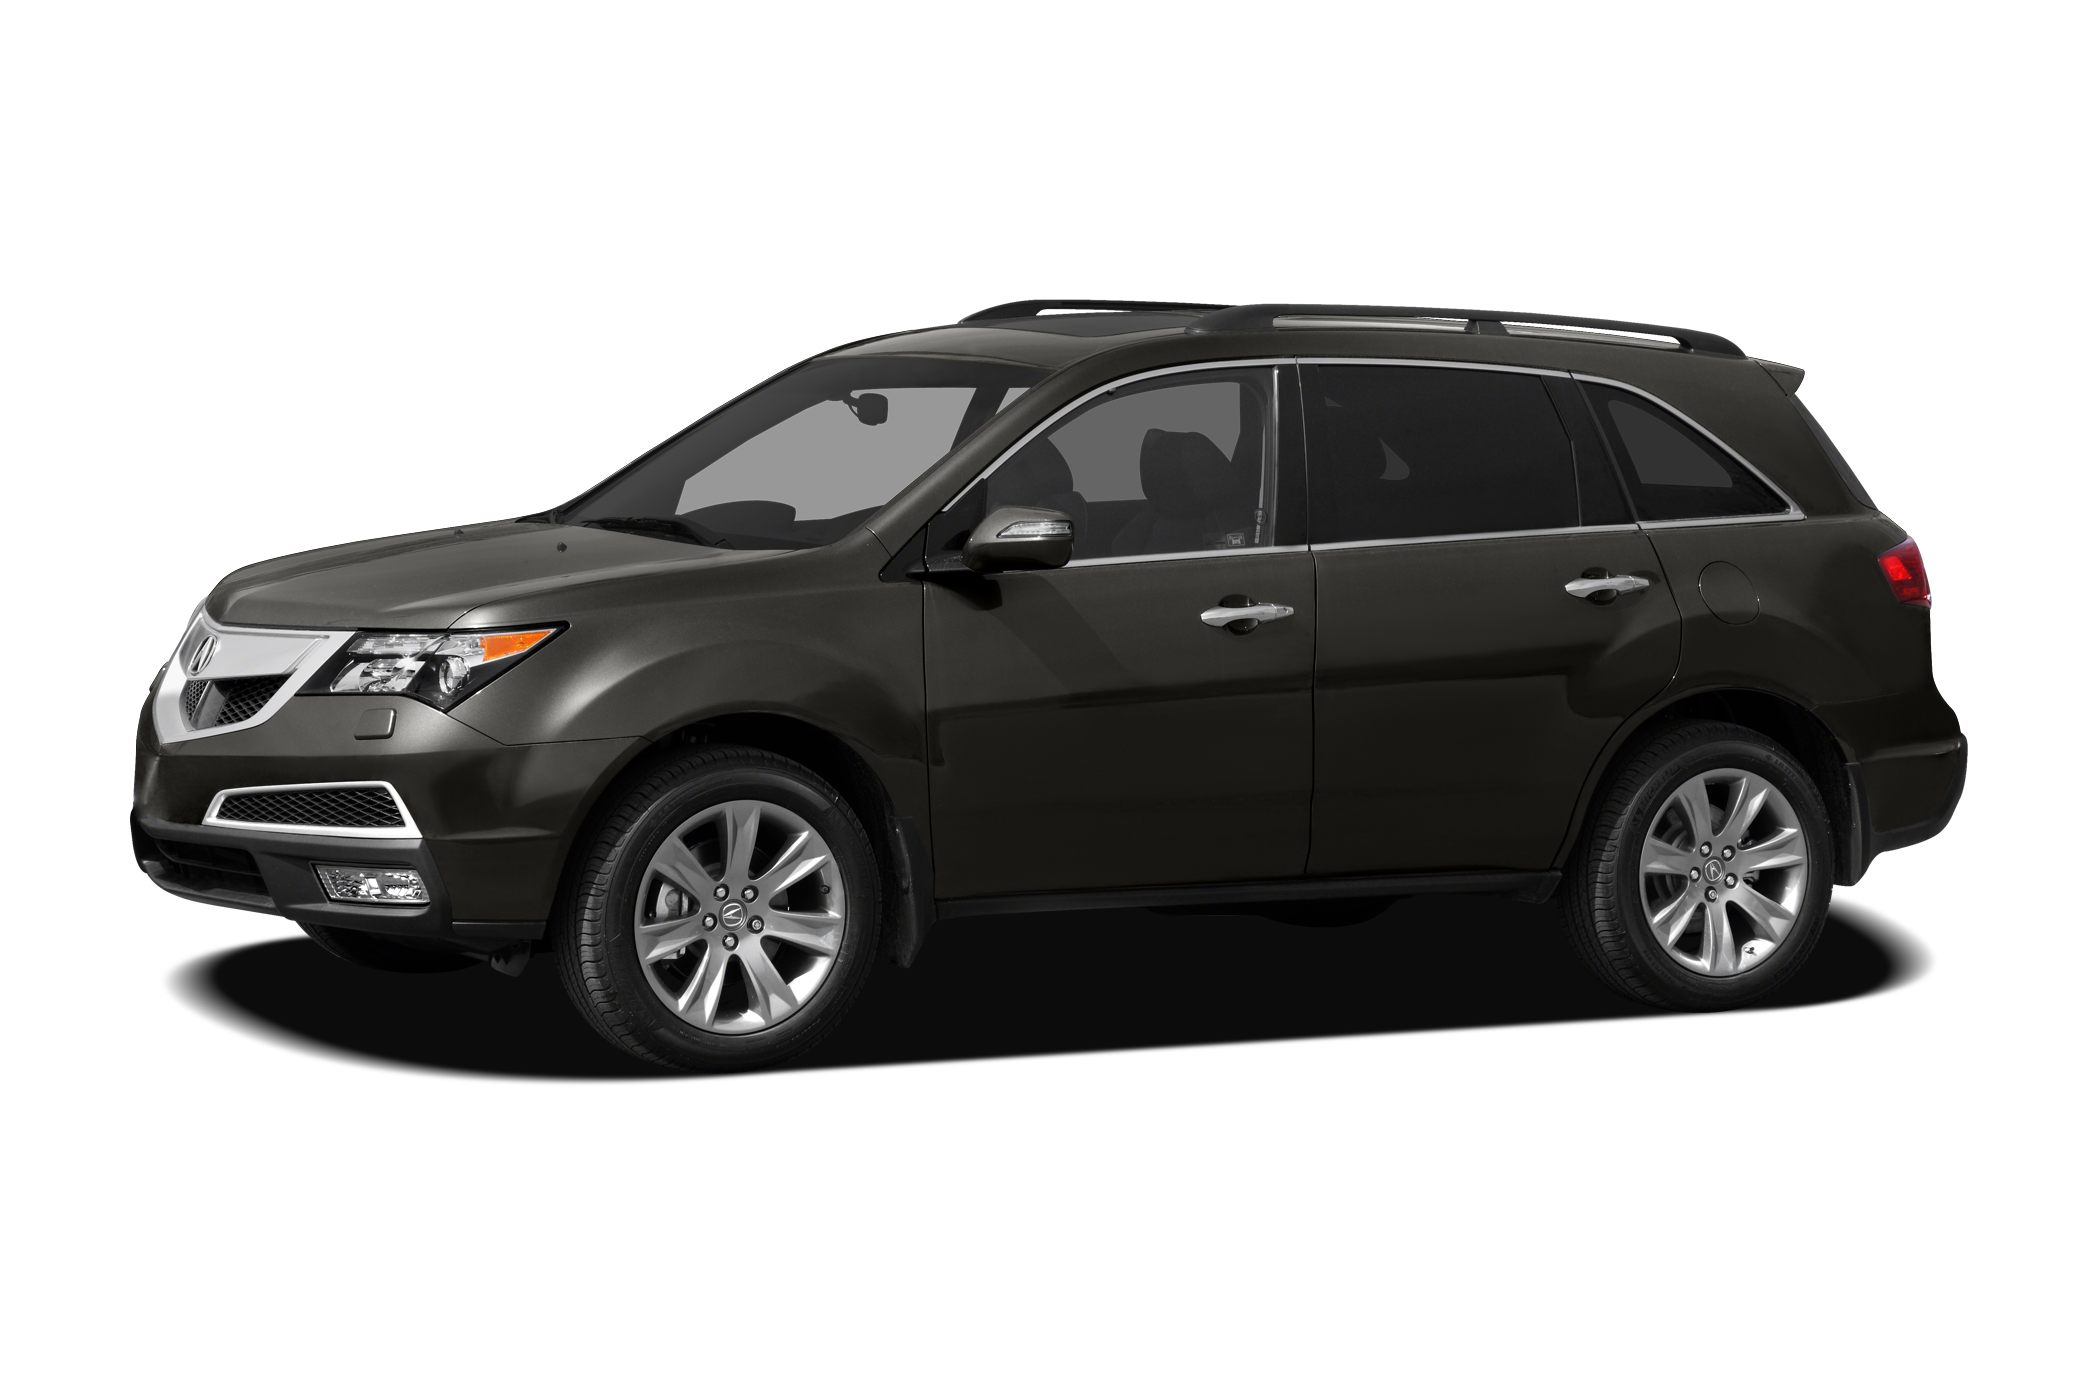 2012 Acura MDX 37 Land a deal on this 2012 Acura MDX BASE while we have it Roomy yet agile its